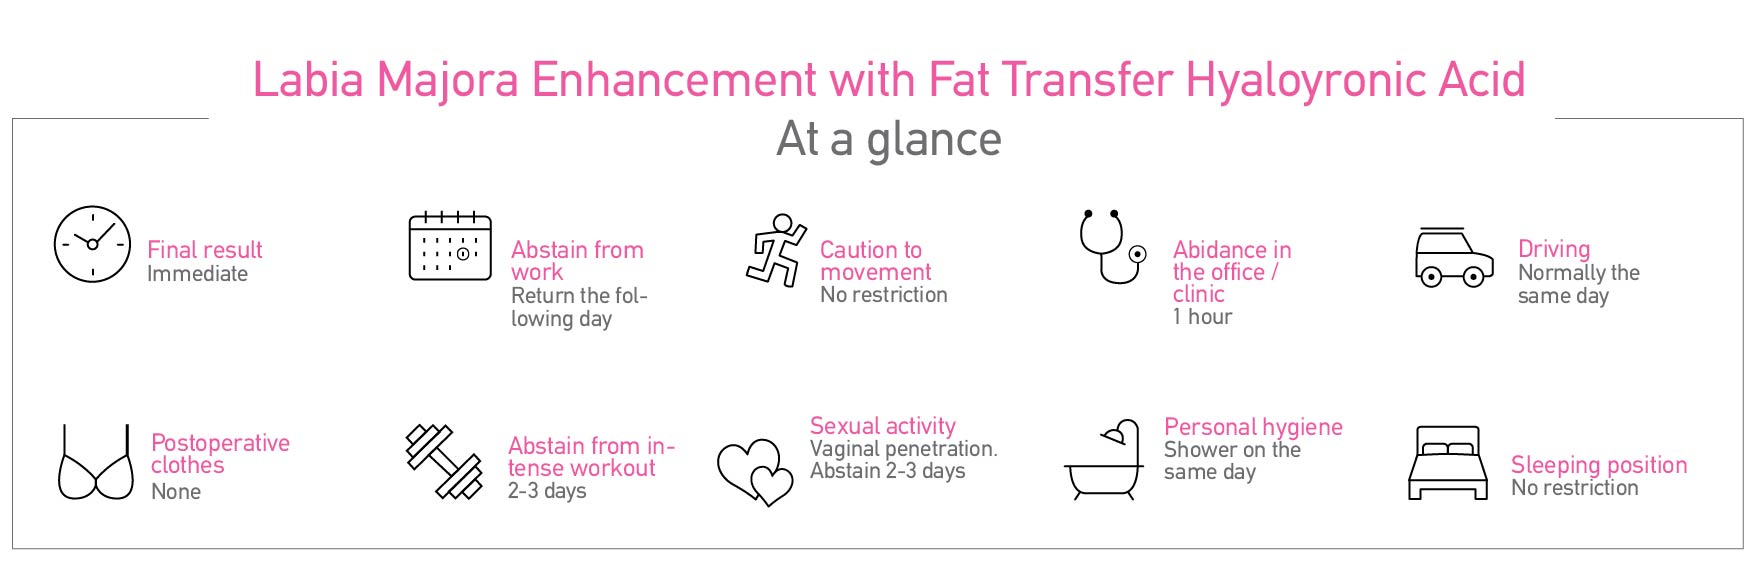 Labia Majora Enhancement with Fat transfer / Hyaluronic Acid